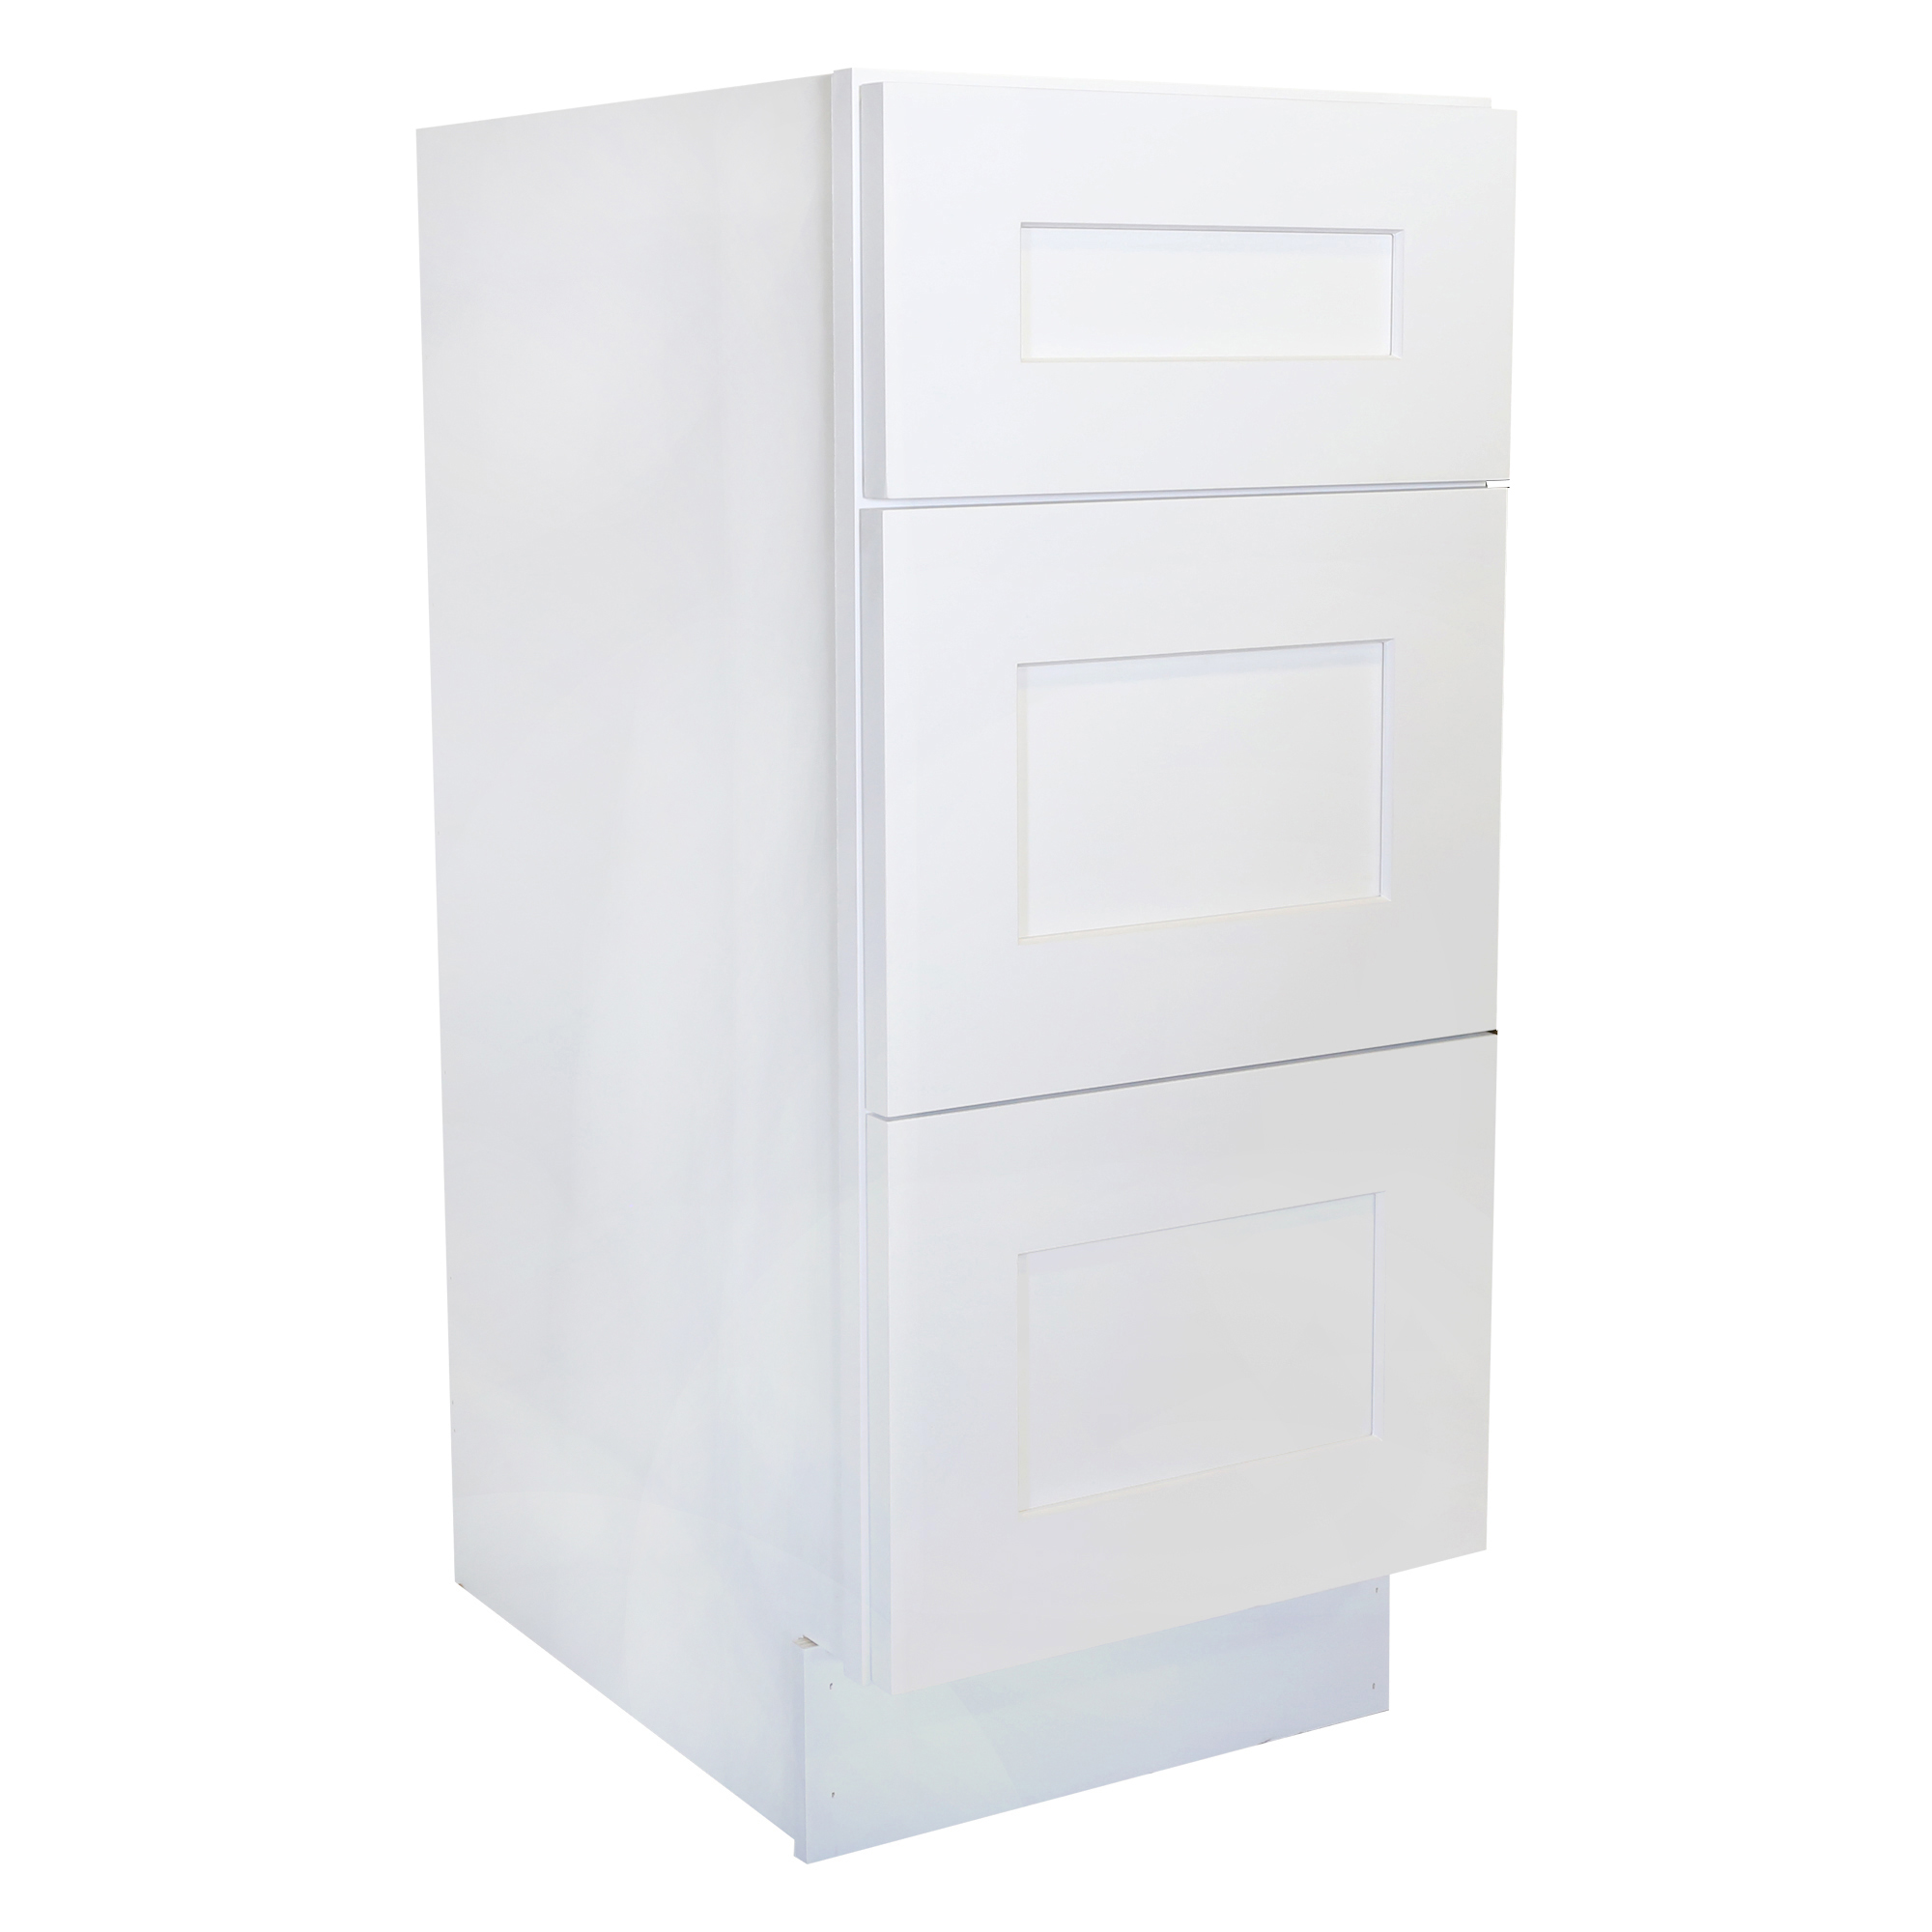 Ready to Assemble 27Wx34.5Hx24D in. Shaker Base Drawer with 1 Standard Drawer with 2 Deep Drawers in White